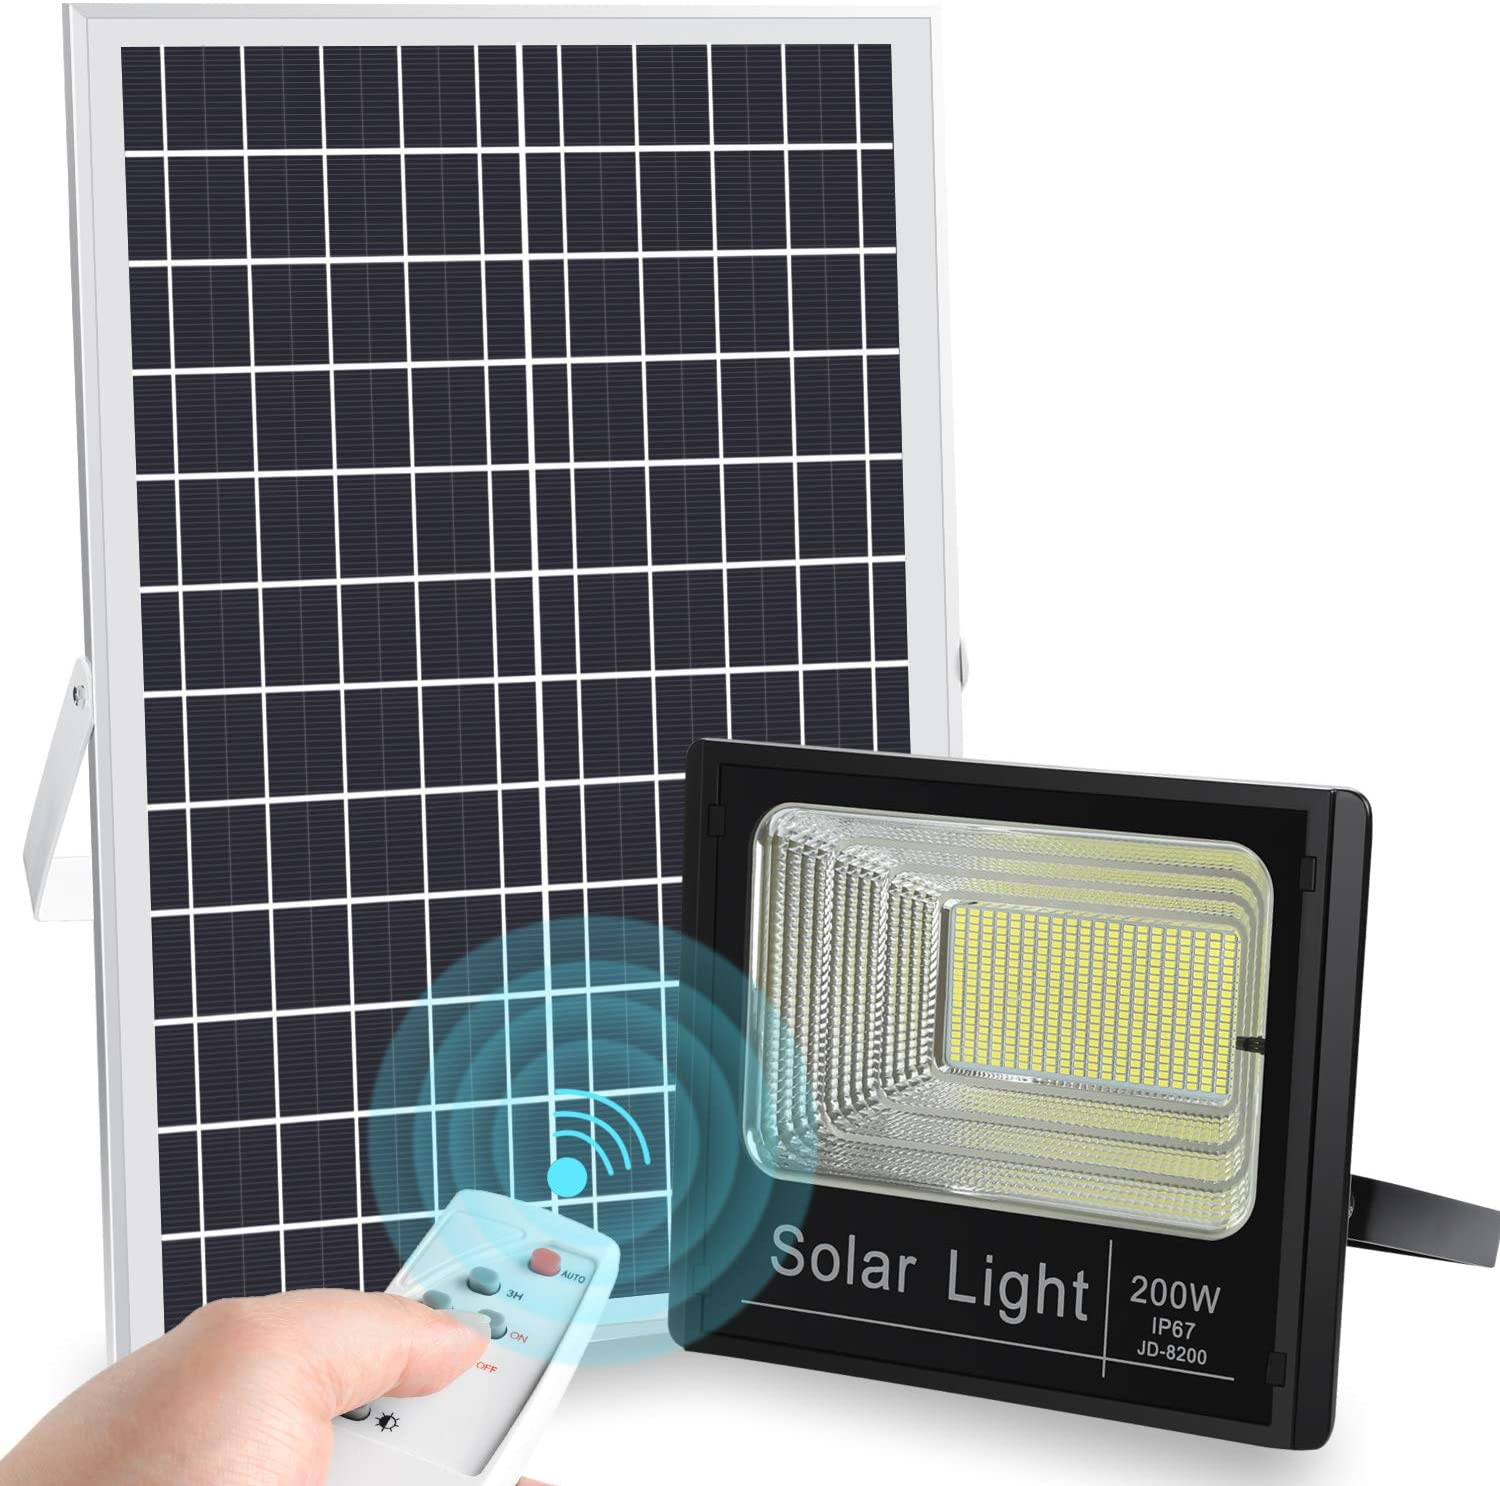 200W Led Housing Manufacturer Powered Die Casting Waterproof Black <strong>Lighting</strong> Wall Mounted Optical Solar Flood Light